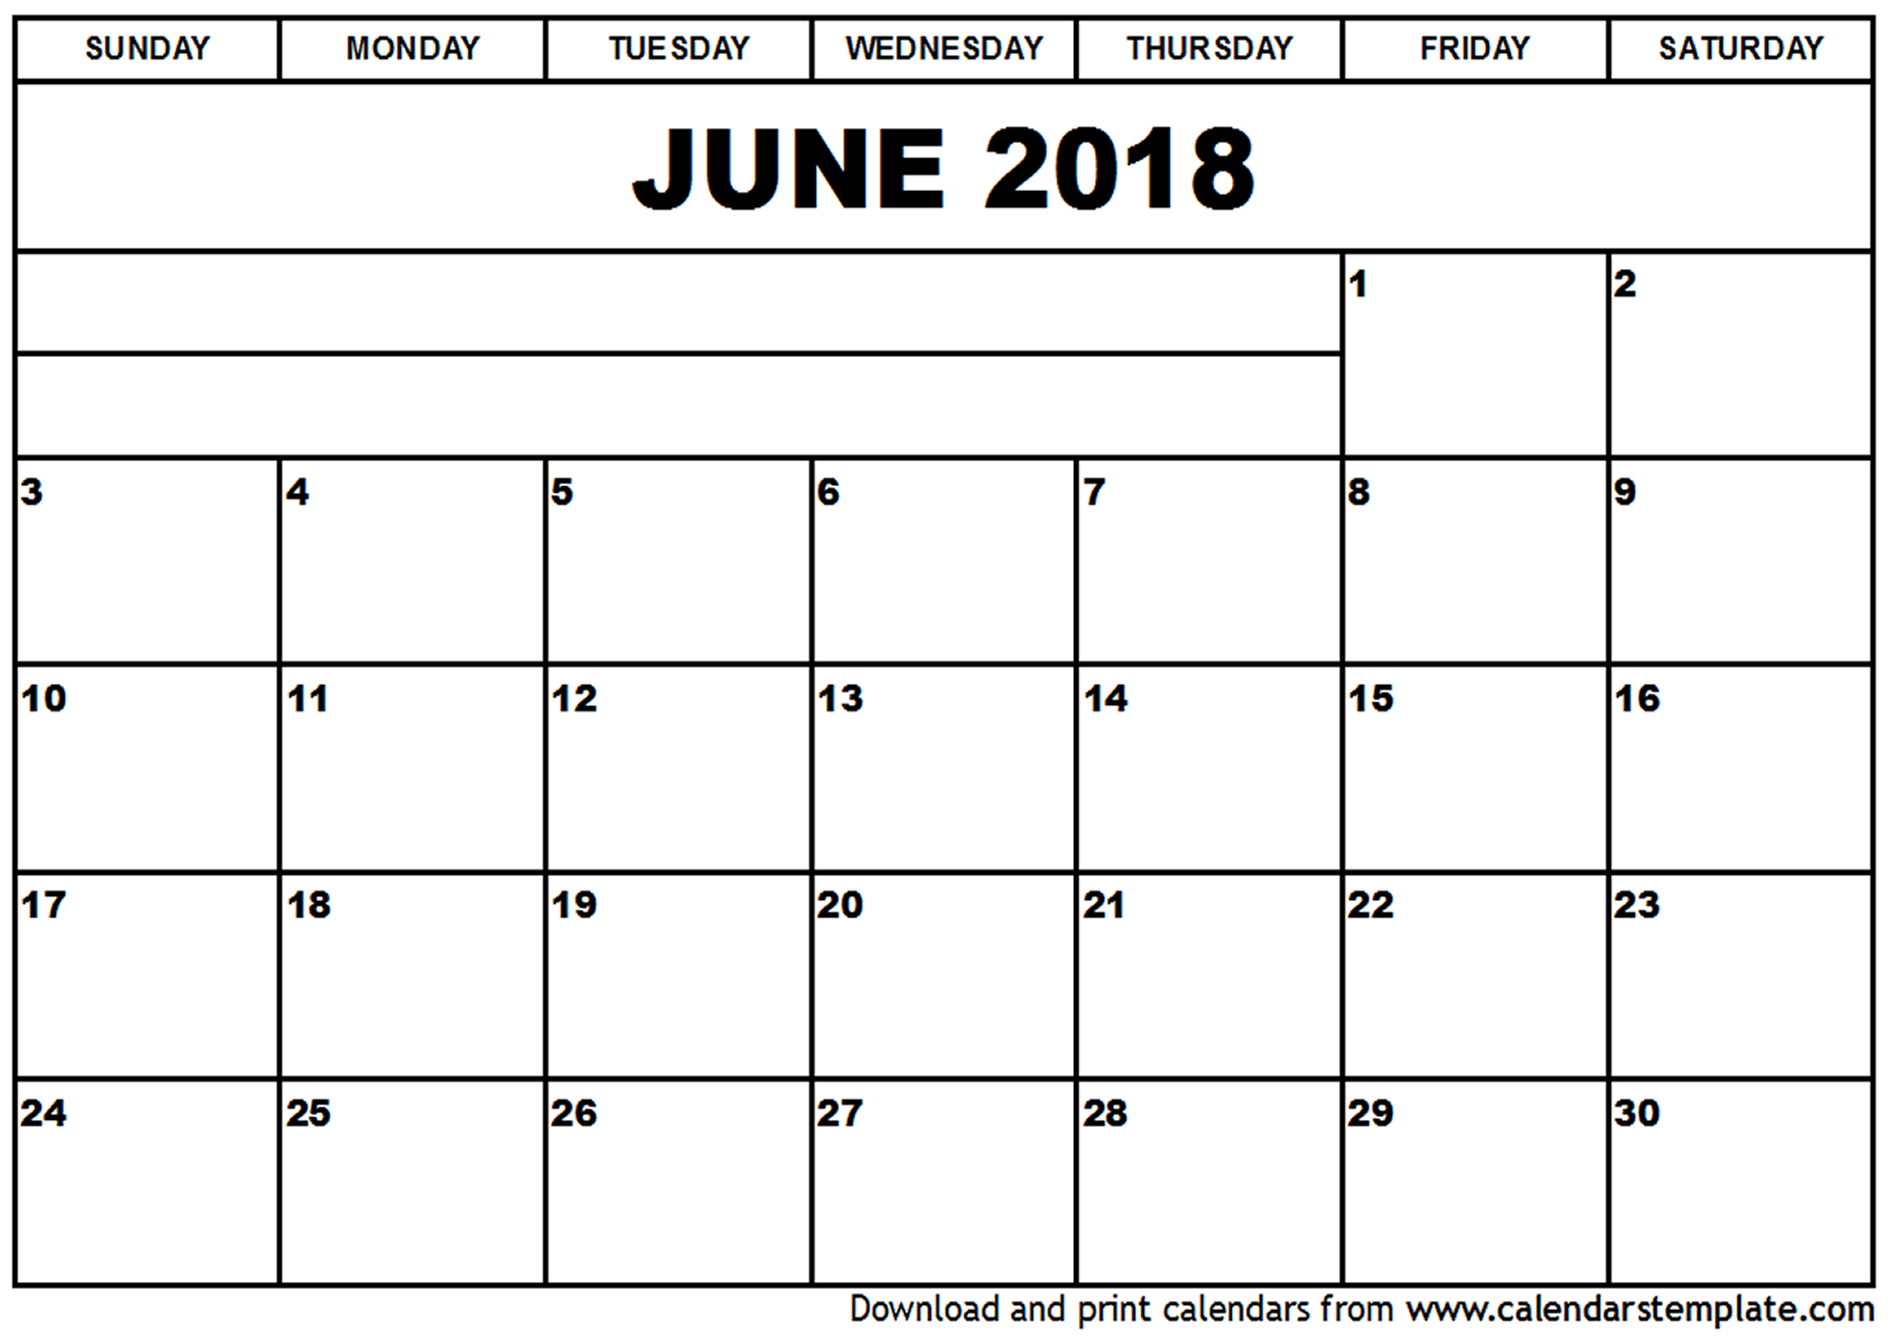 Printable June 2018 Calendar Document